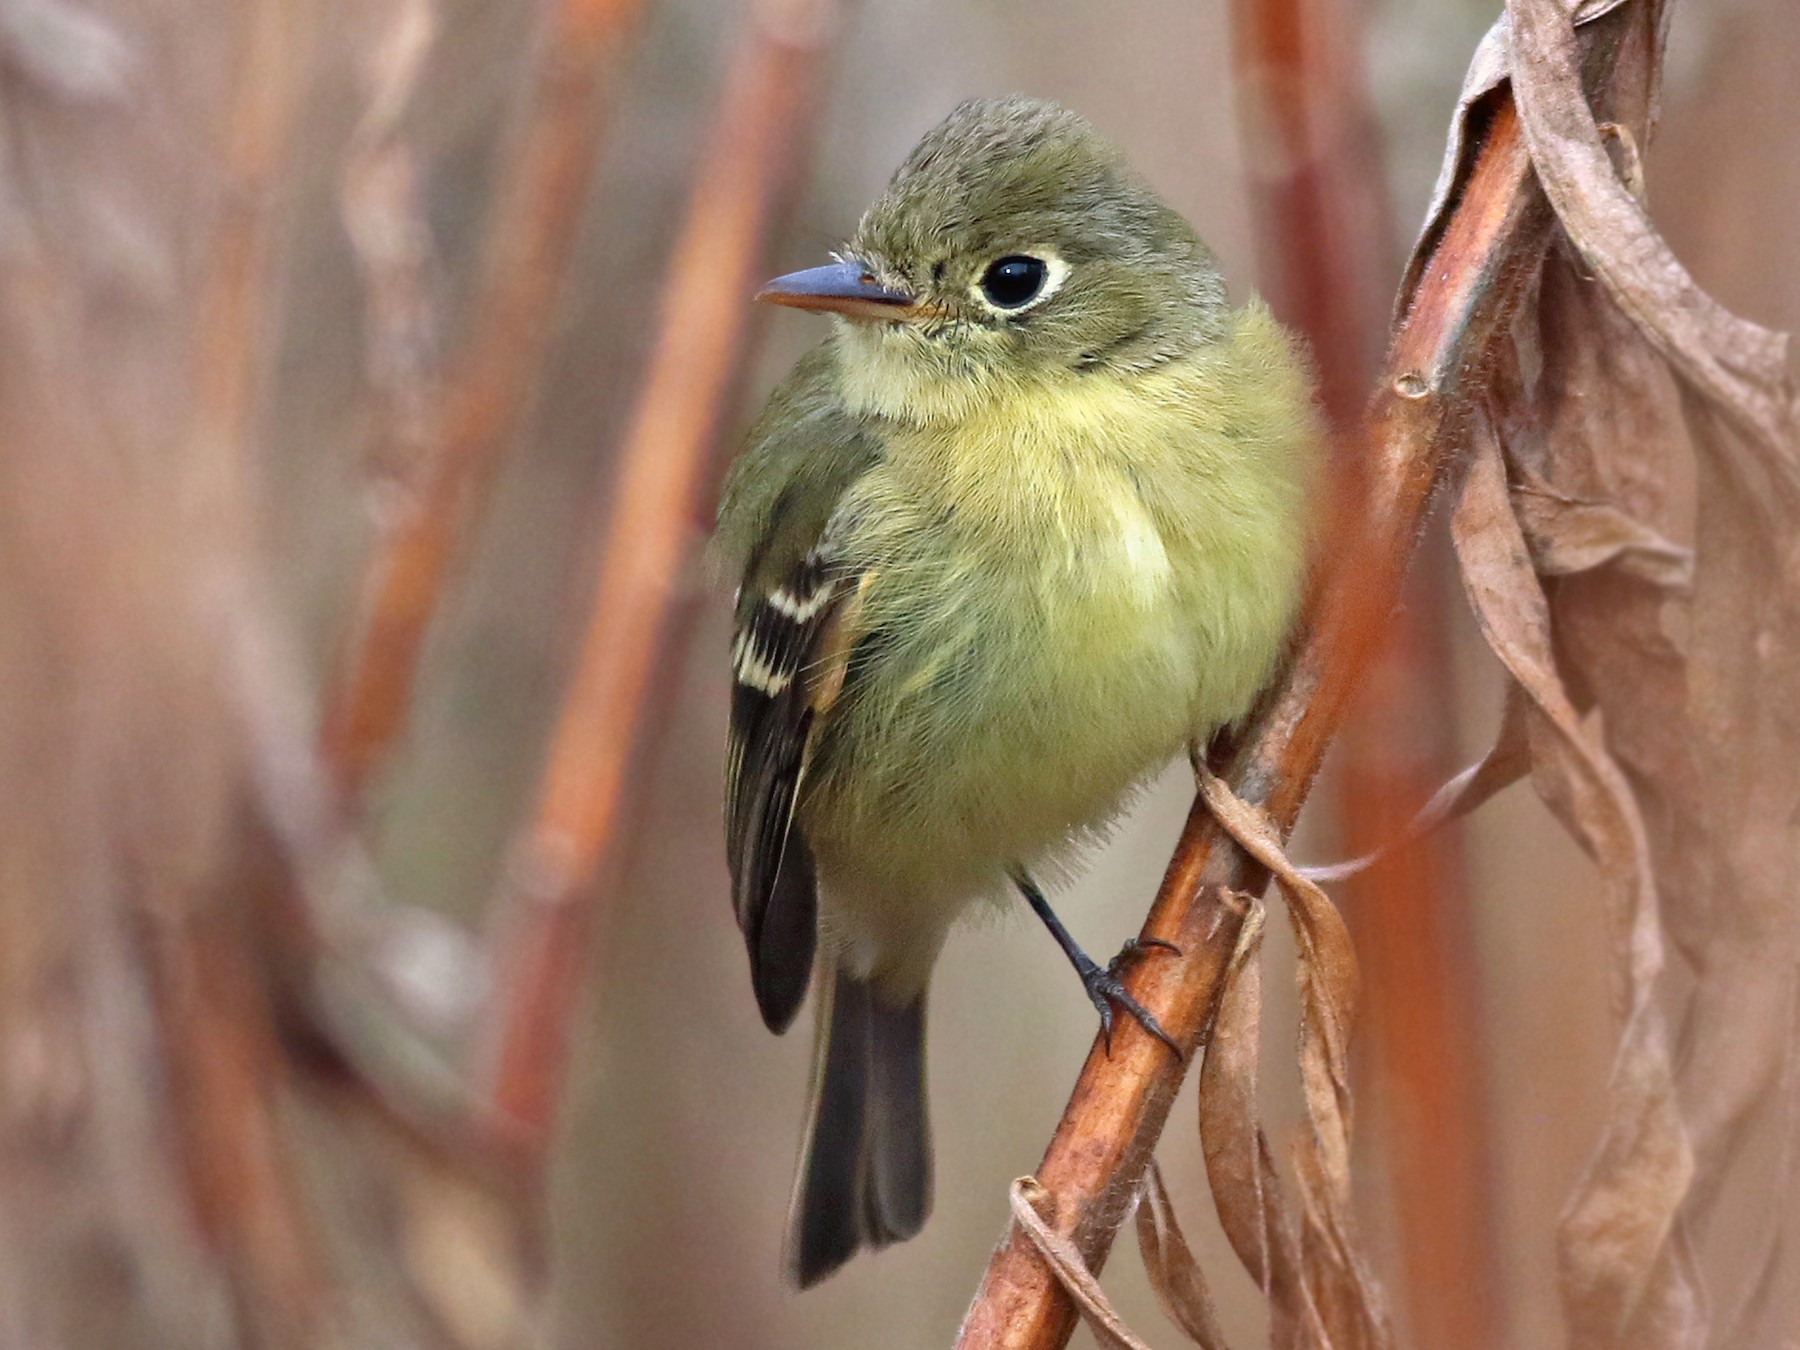 Pacific-slope Flycatcher - Jeremiah Trimble